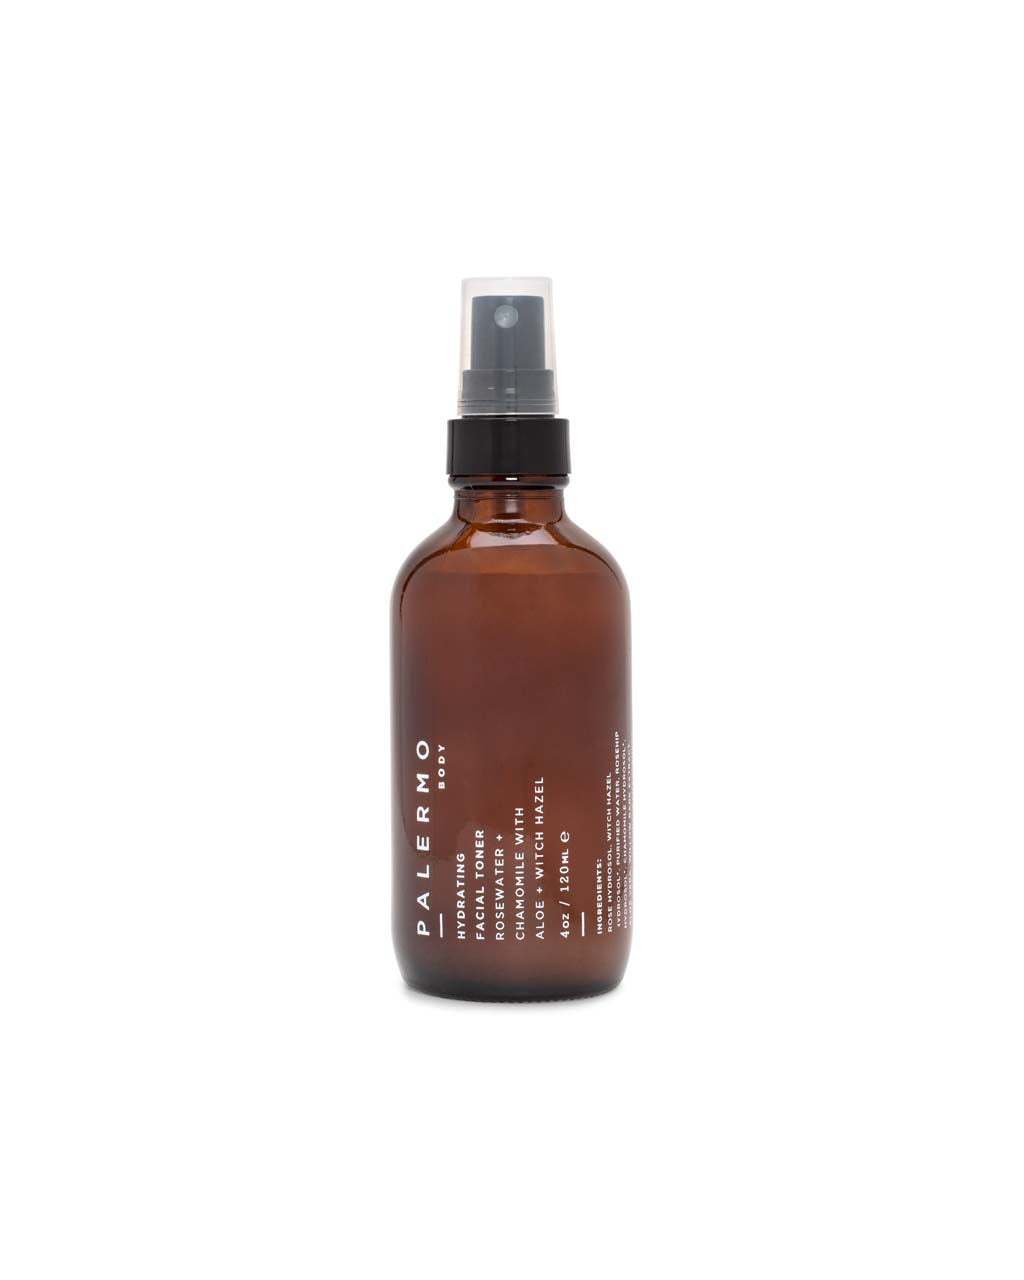 The Hydrating Facial Toner by Palermo comes in an amber spray bottle.